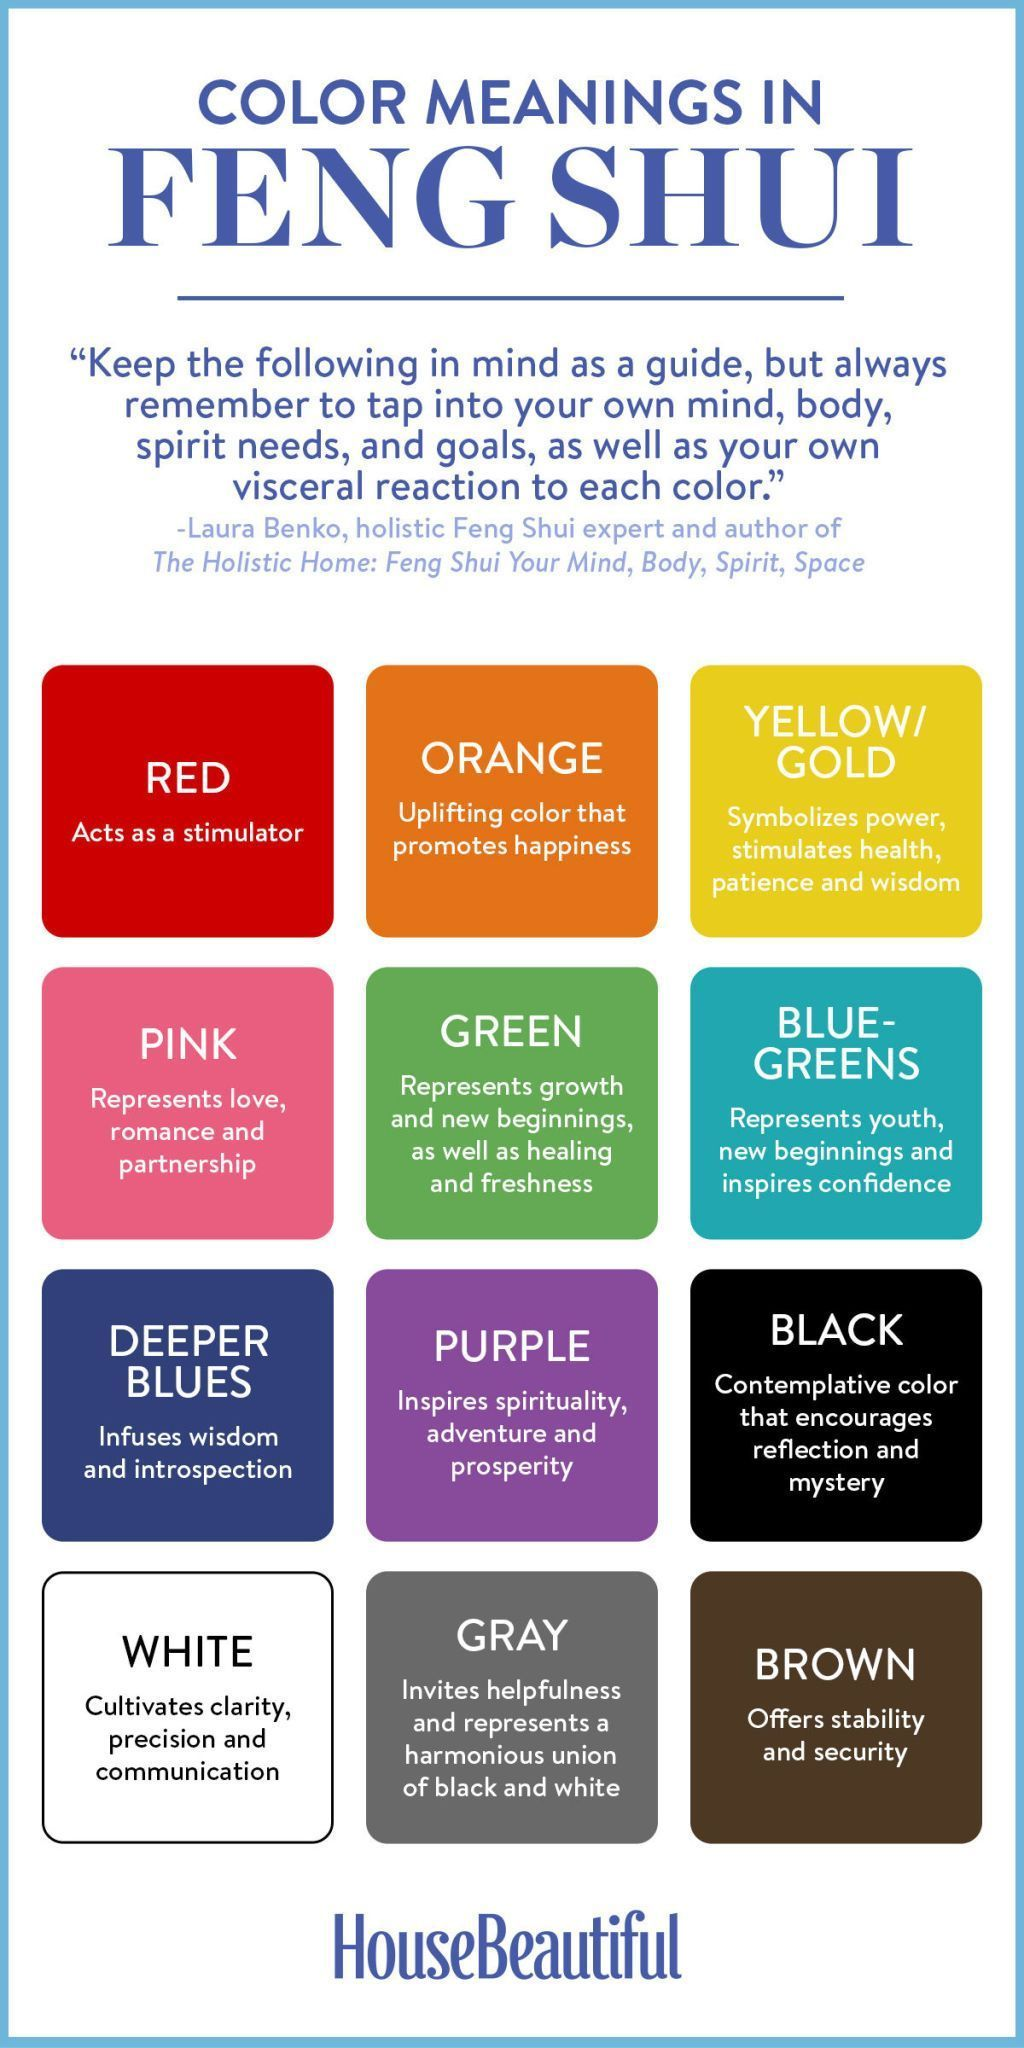 How To Choose The Perfect Color The Feng Shui Way Color